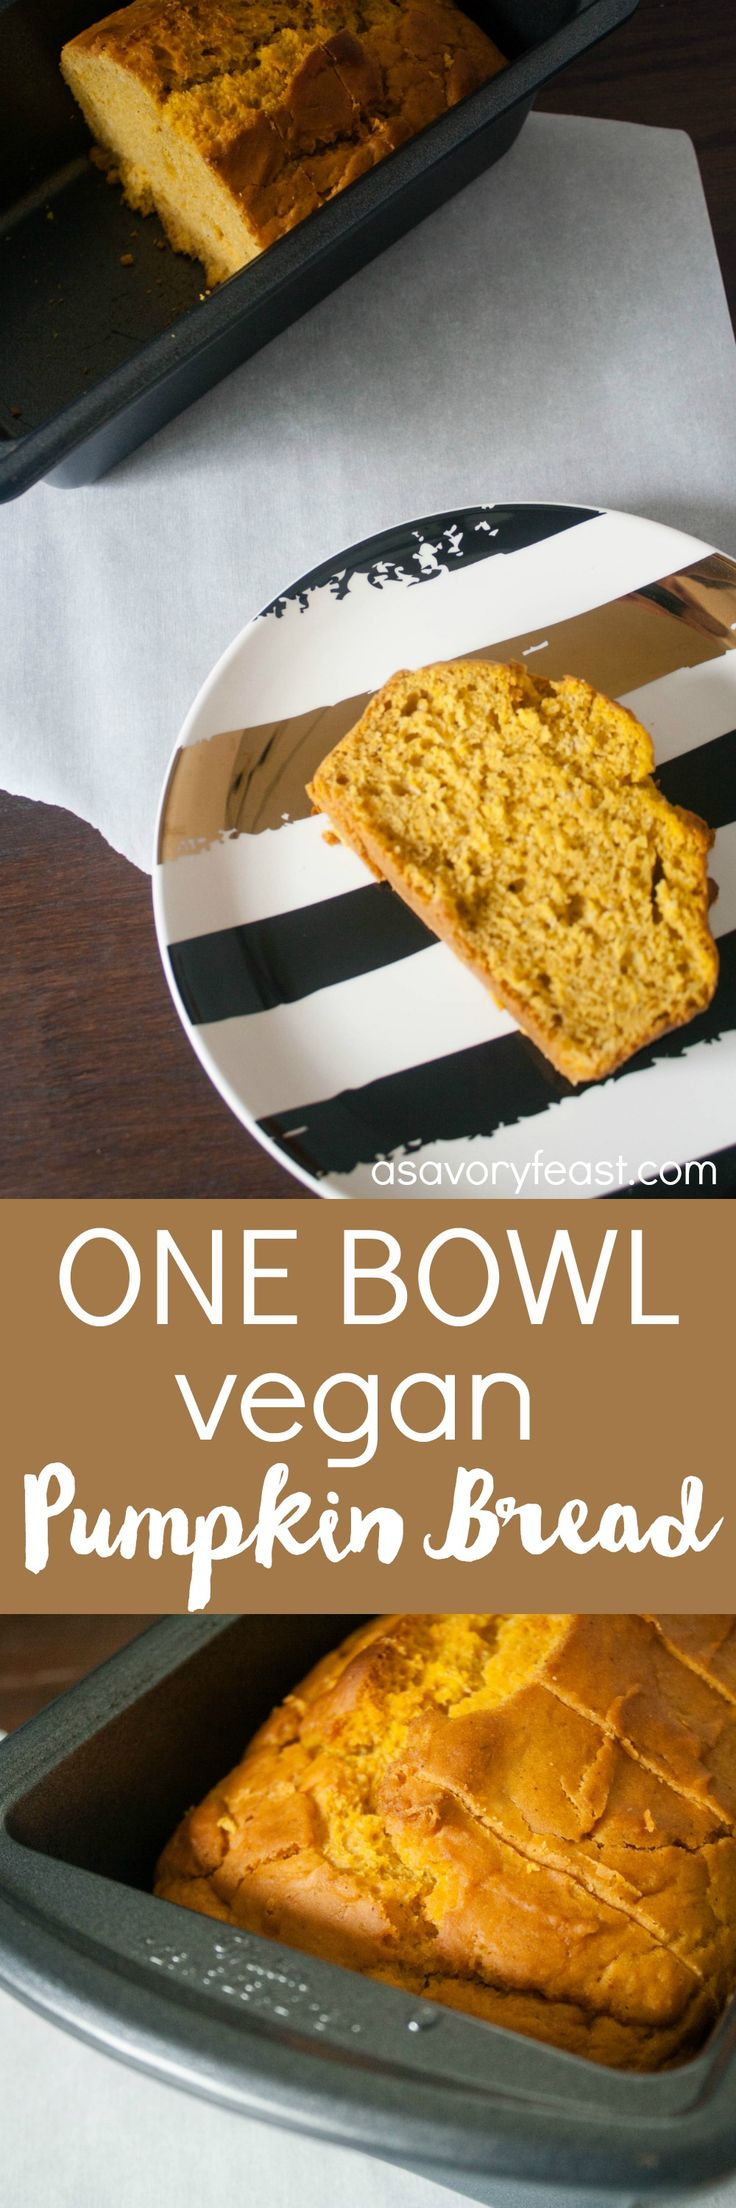 It doesn't get much easier than this! Kick off the Fall season with this One Bowl Vegan Pumpkin Bread. It's quick to mix up in just one bowl. Great for an easy breakfast with a cup of coffee.